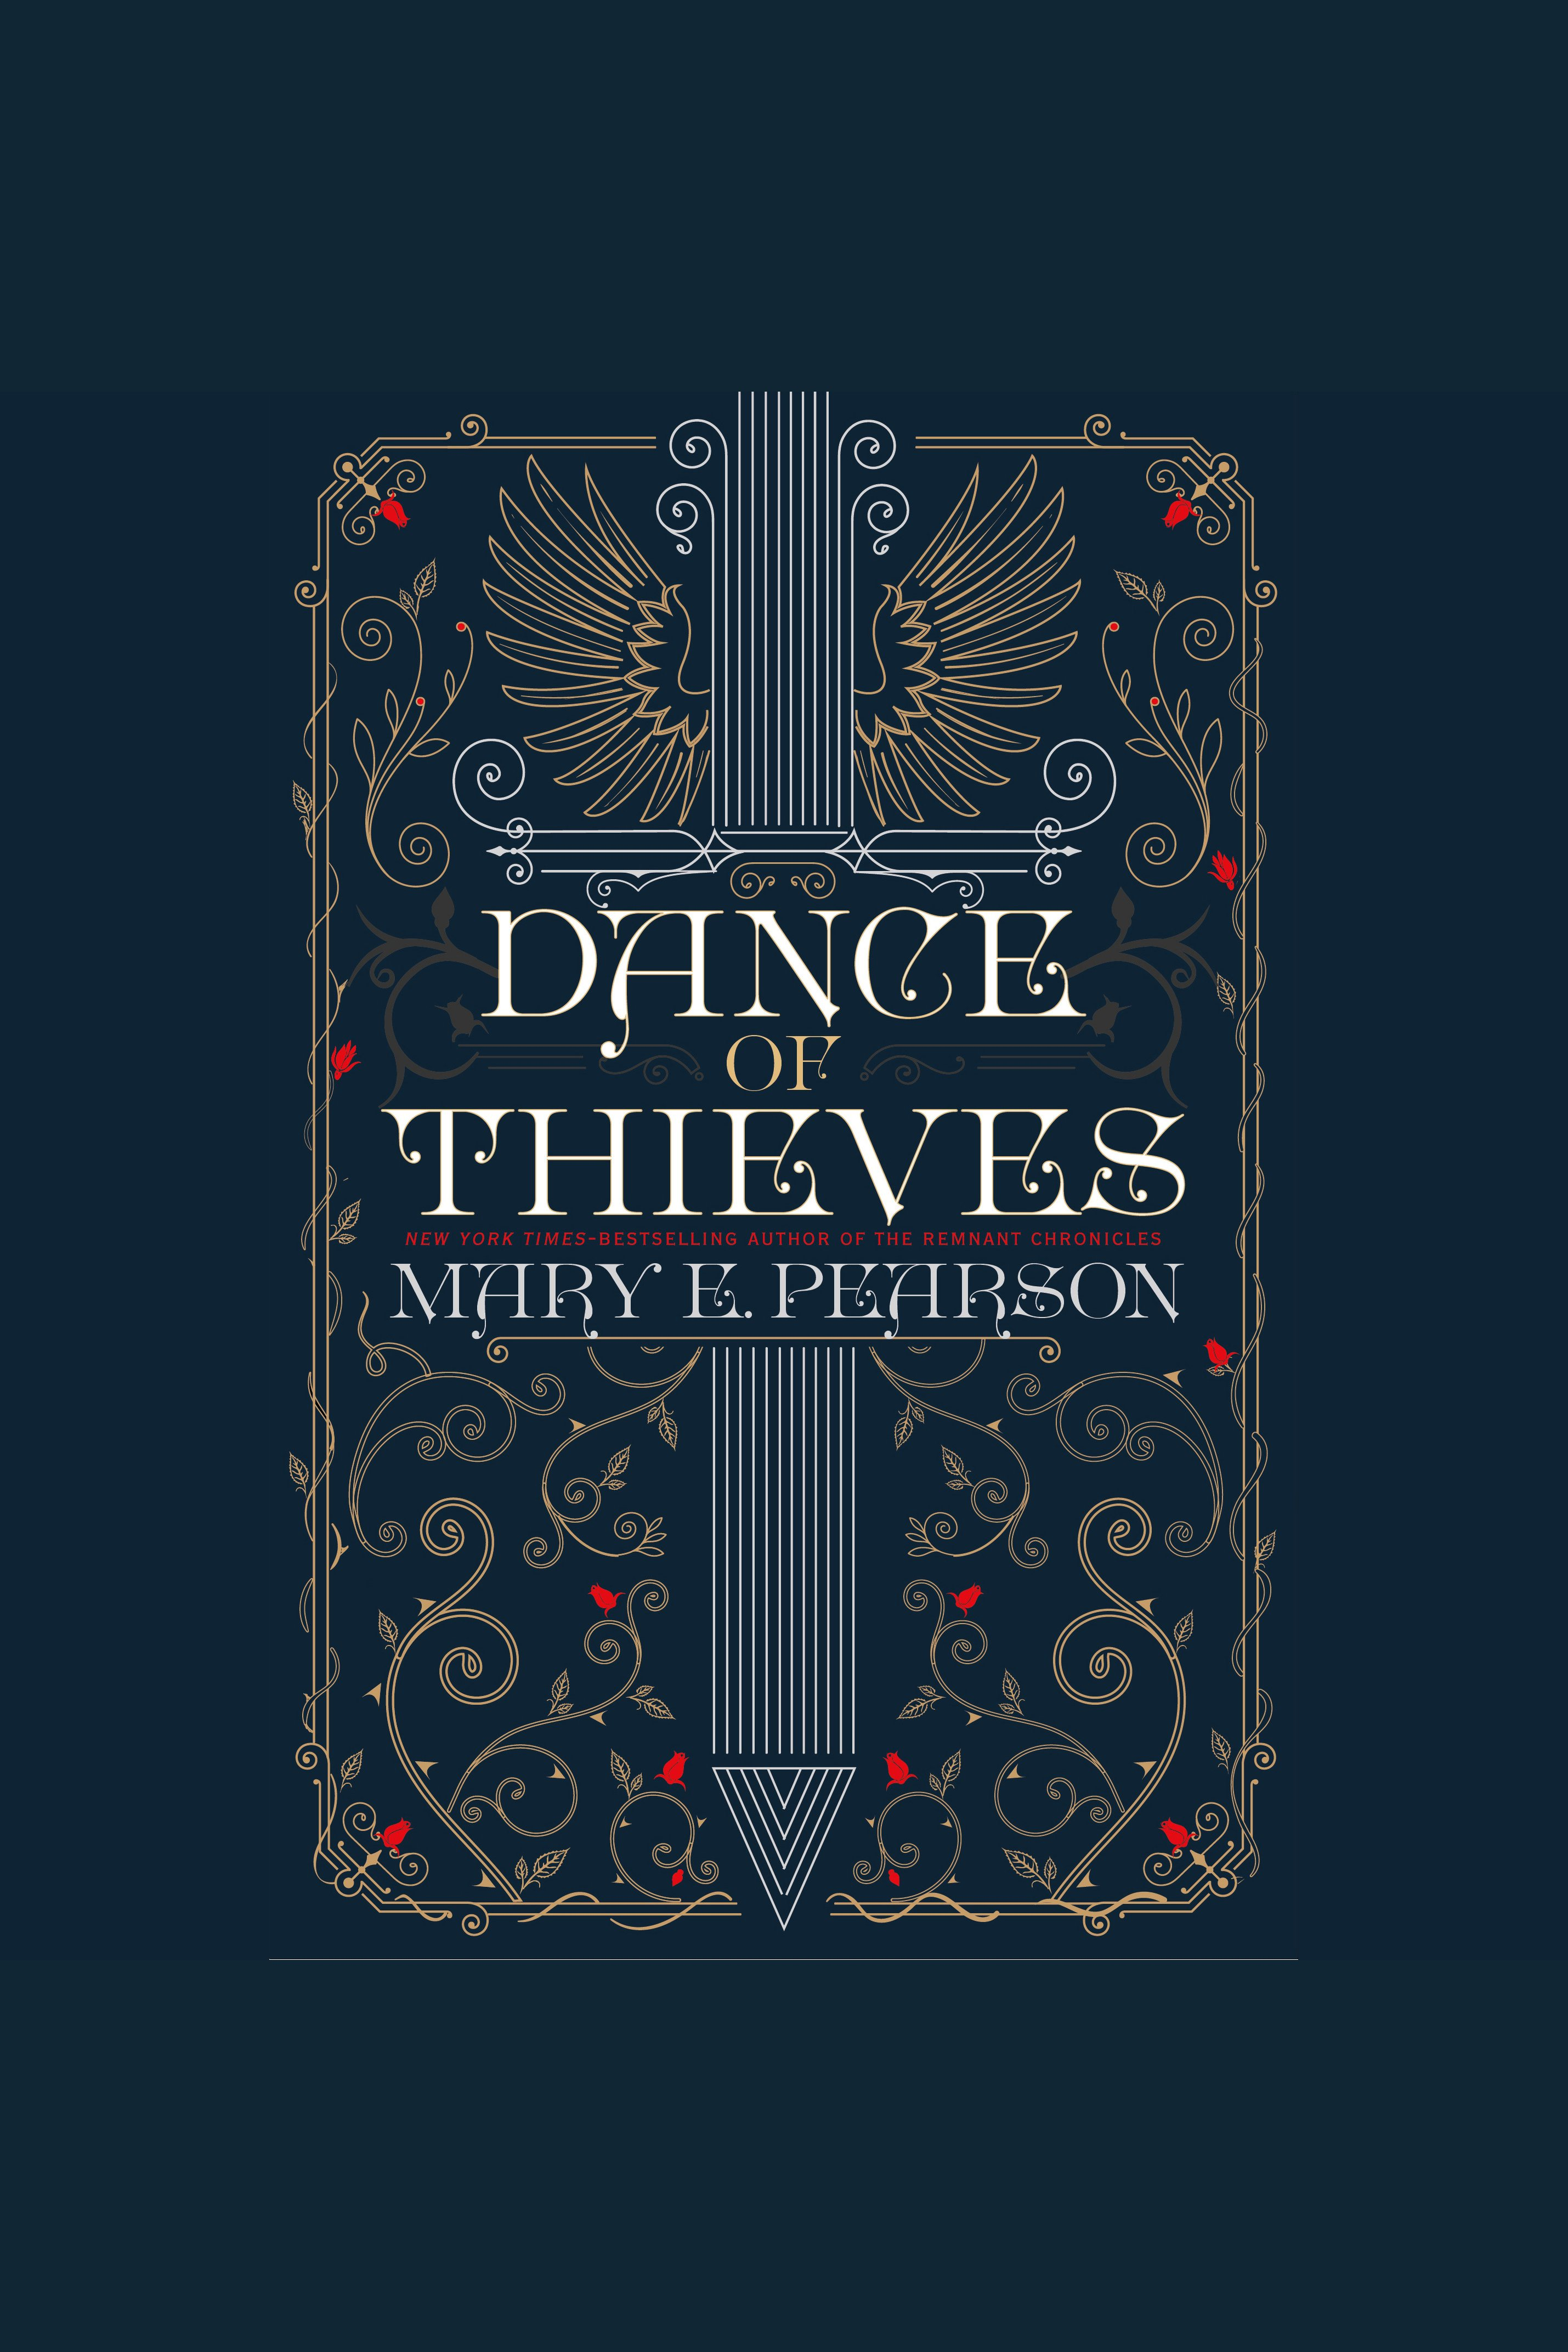 Dance of Thieves Dance of Thieves, Book 1